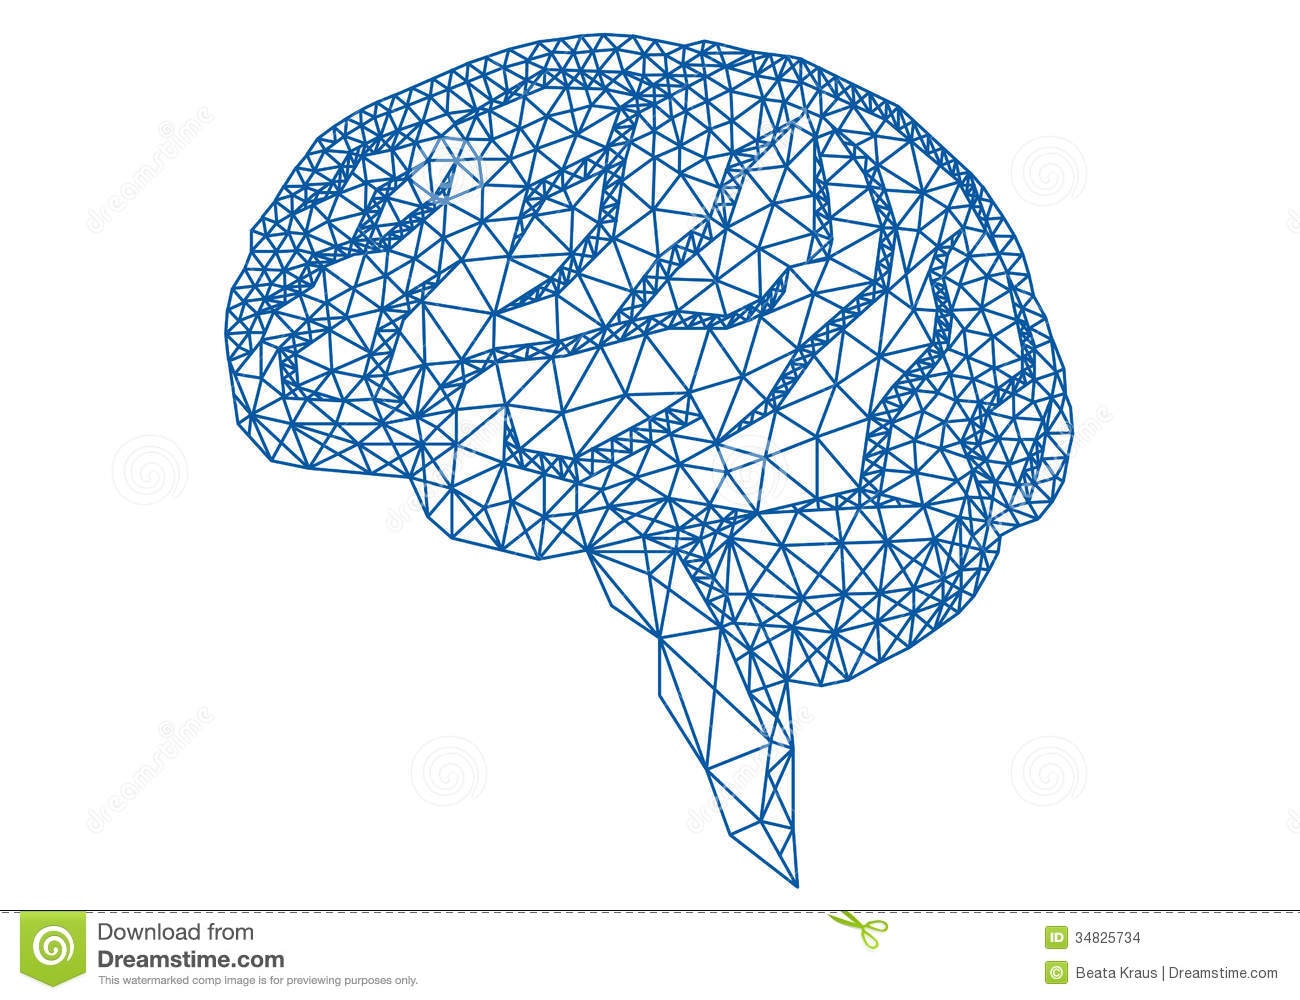 brain pattern wallpaper - photo #17